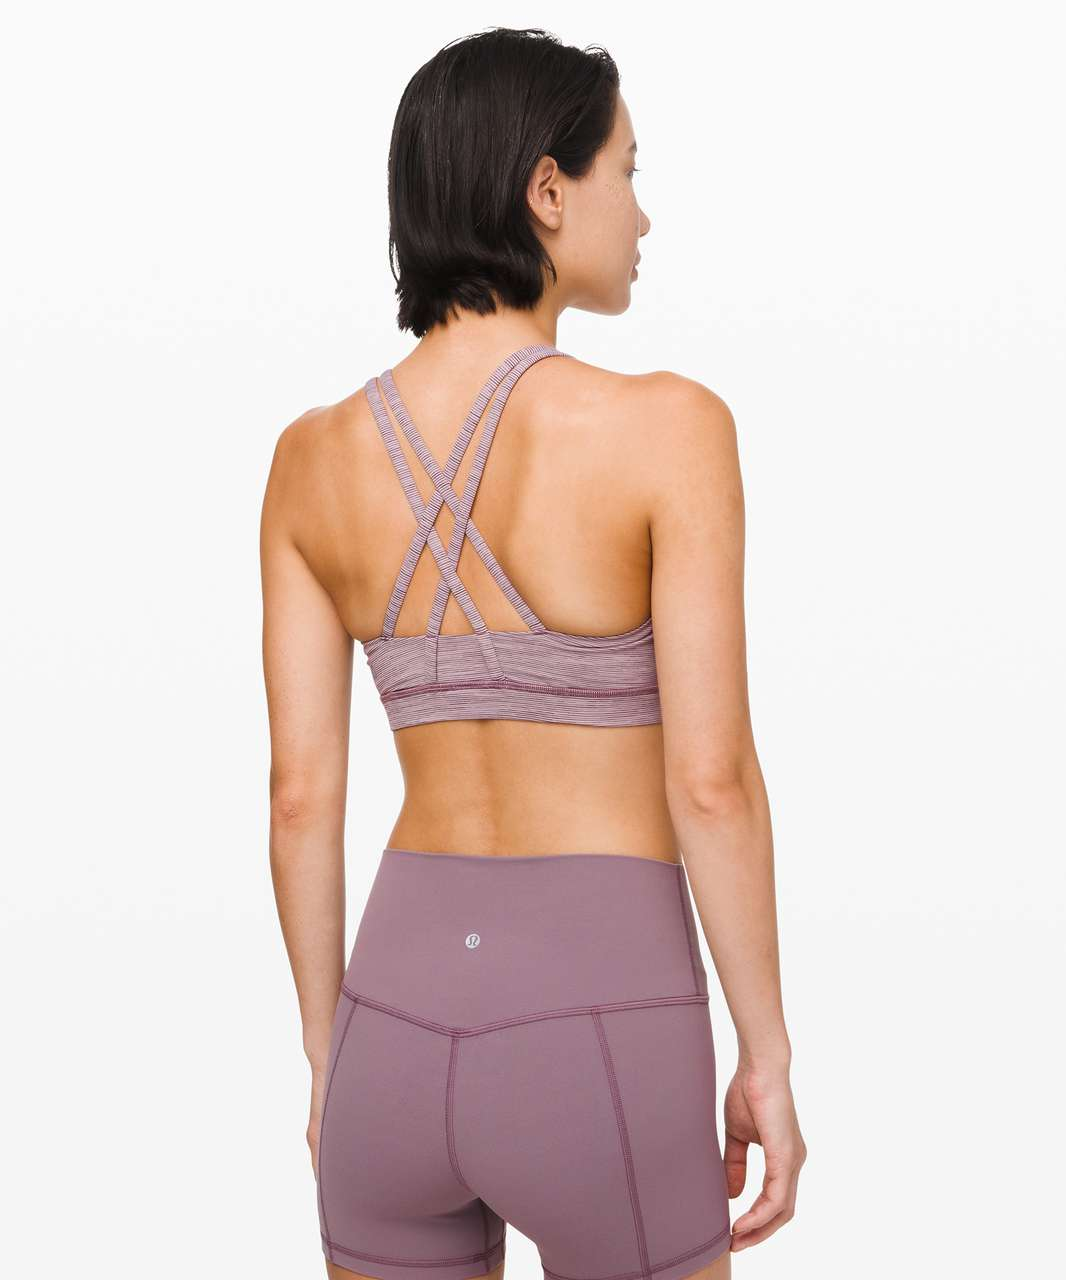 Lululemon Energy Bra - Wee Are From Space Frosted Mulberry Black Currant